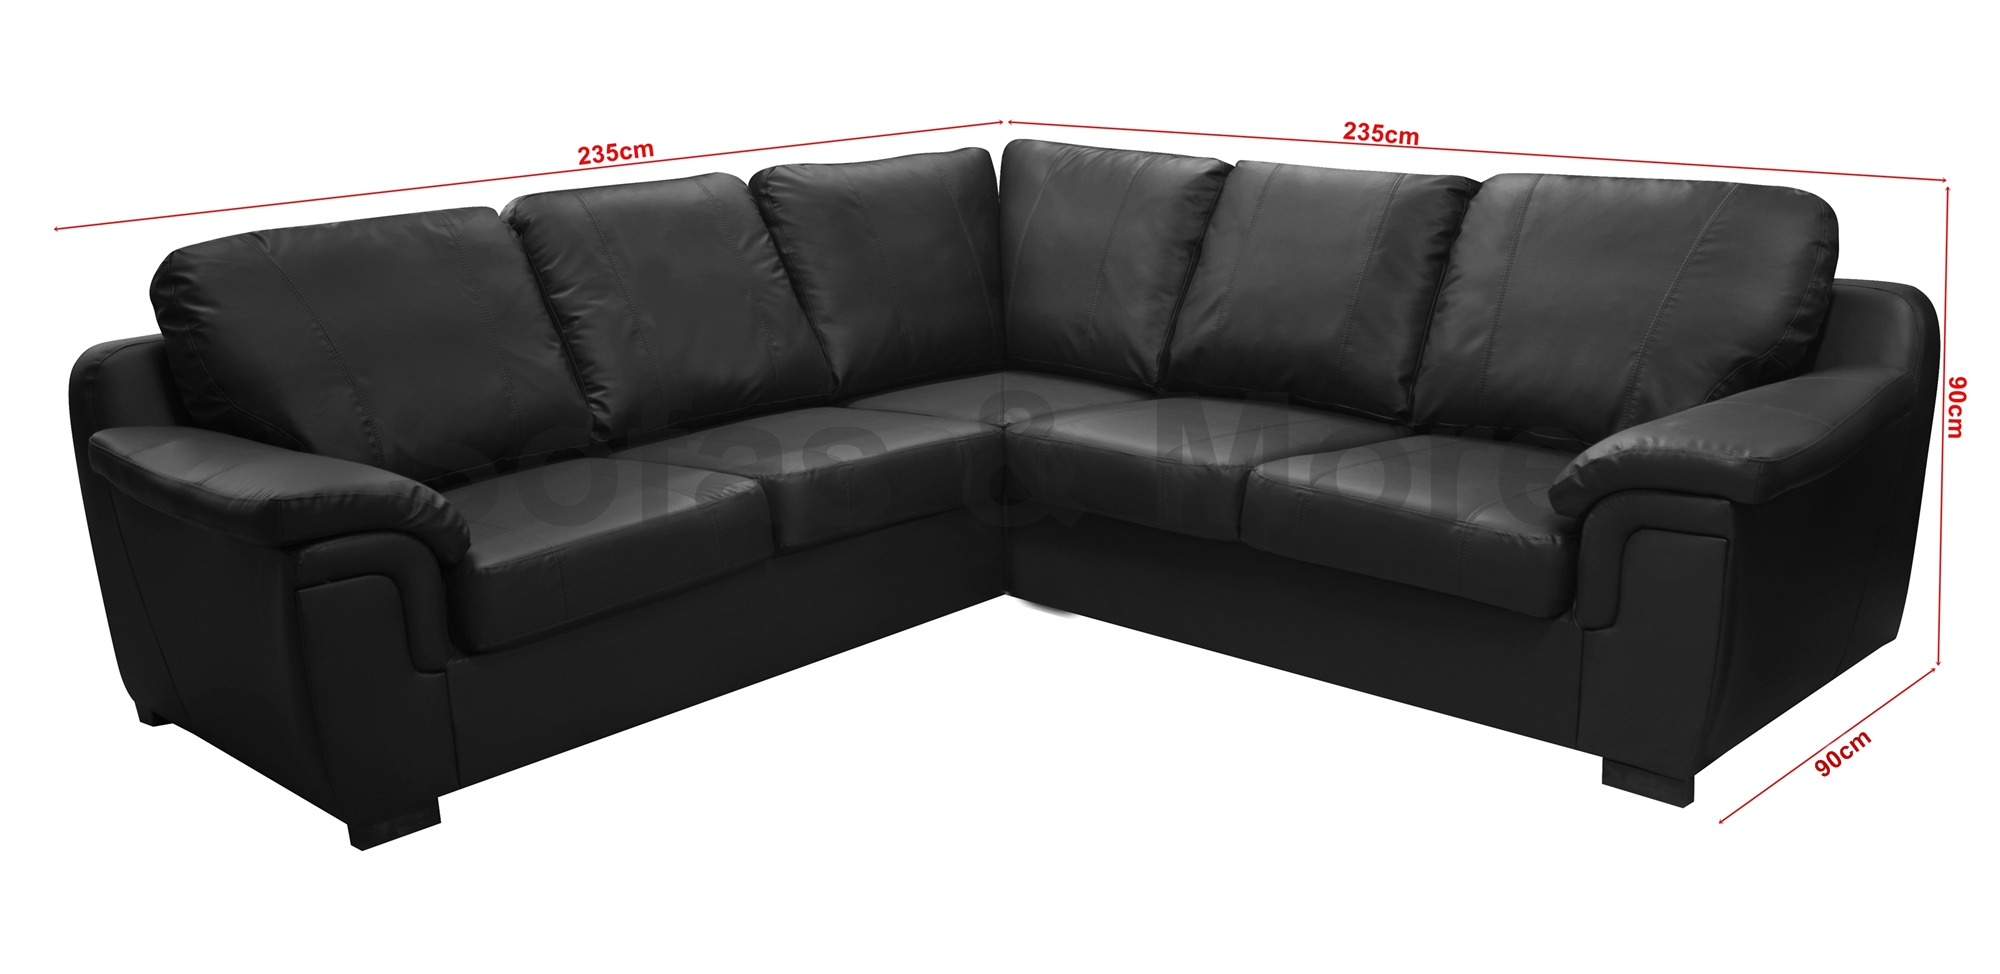 AMY CORNER SOFA BLACK FAUX LEATHER LIVING ROOM SUITE FAST ...